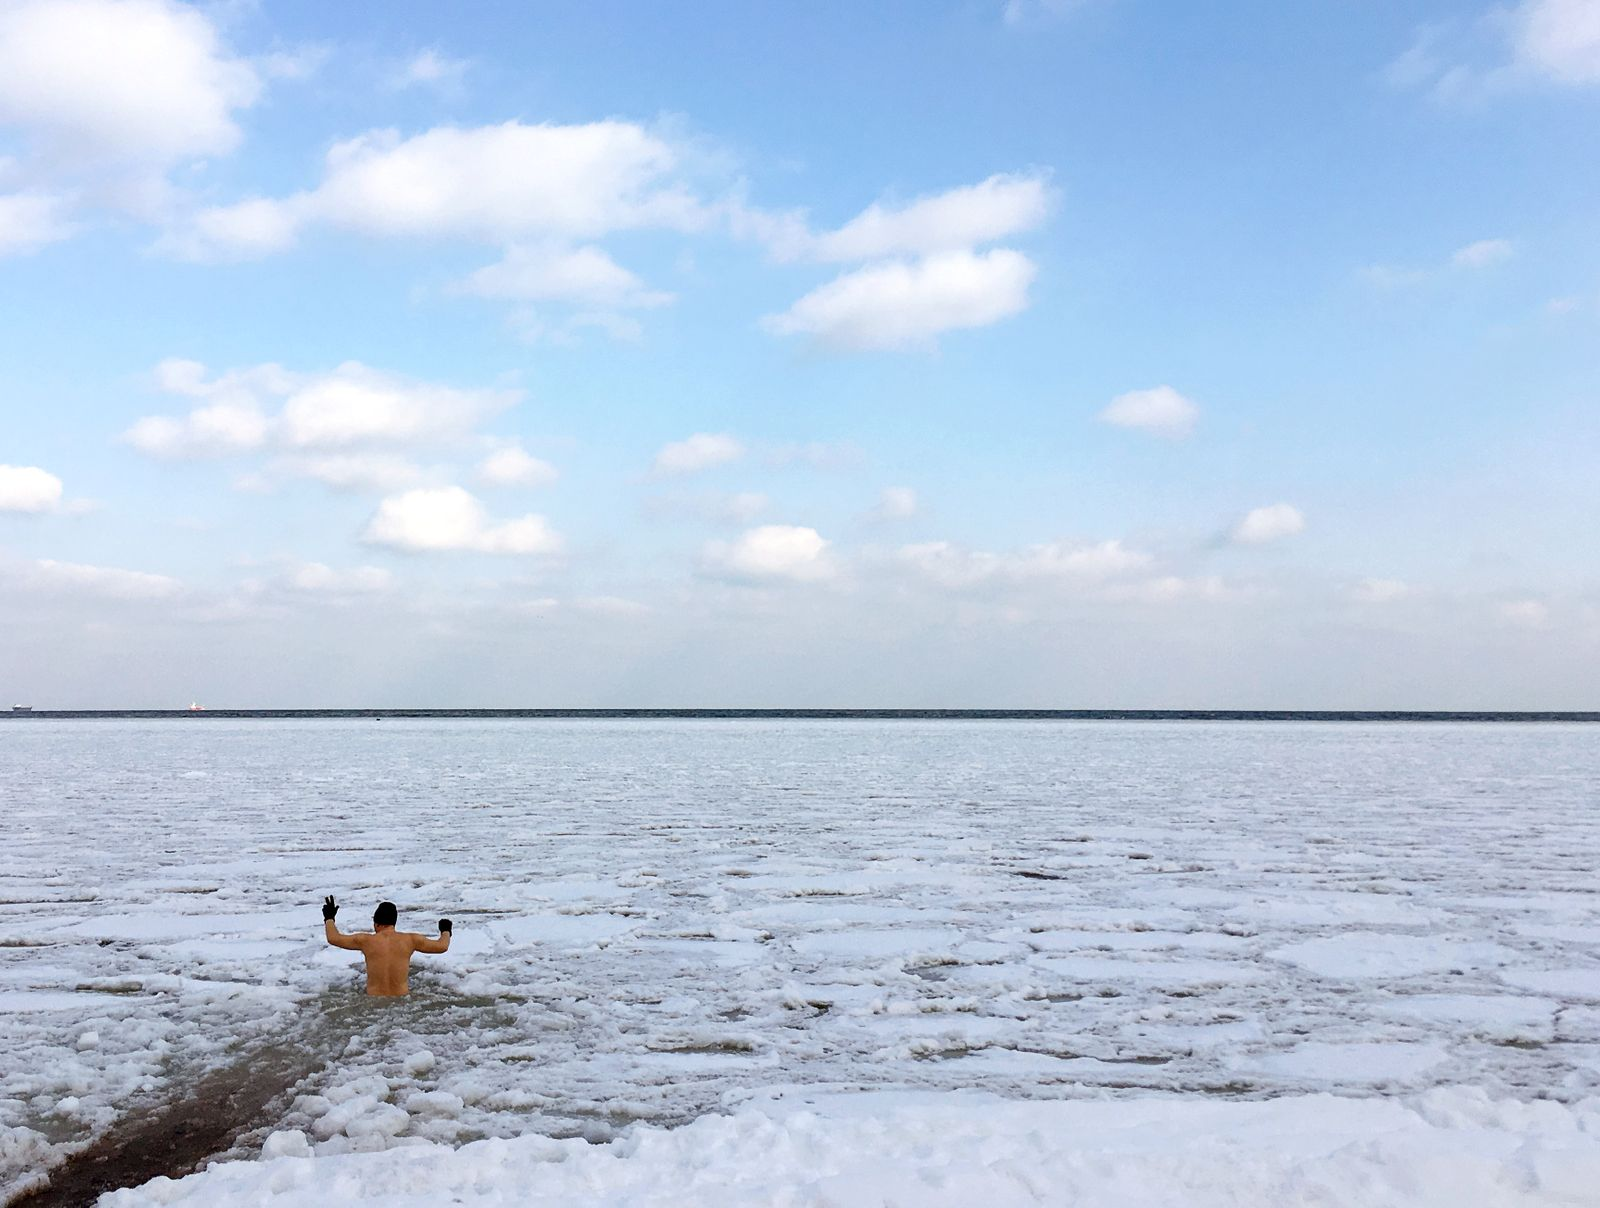 A man takes a bath in partly frozen Baltic sea in Gdynia